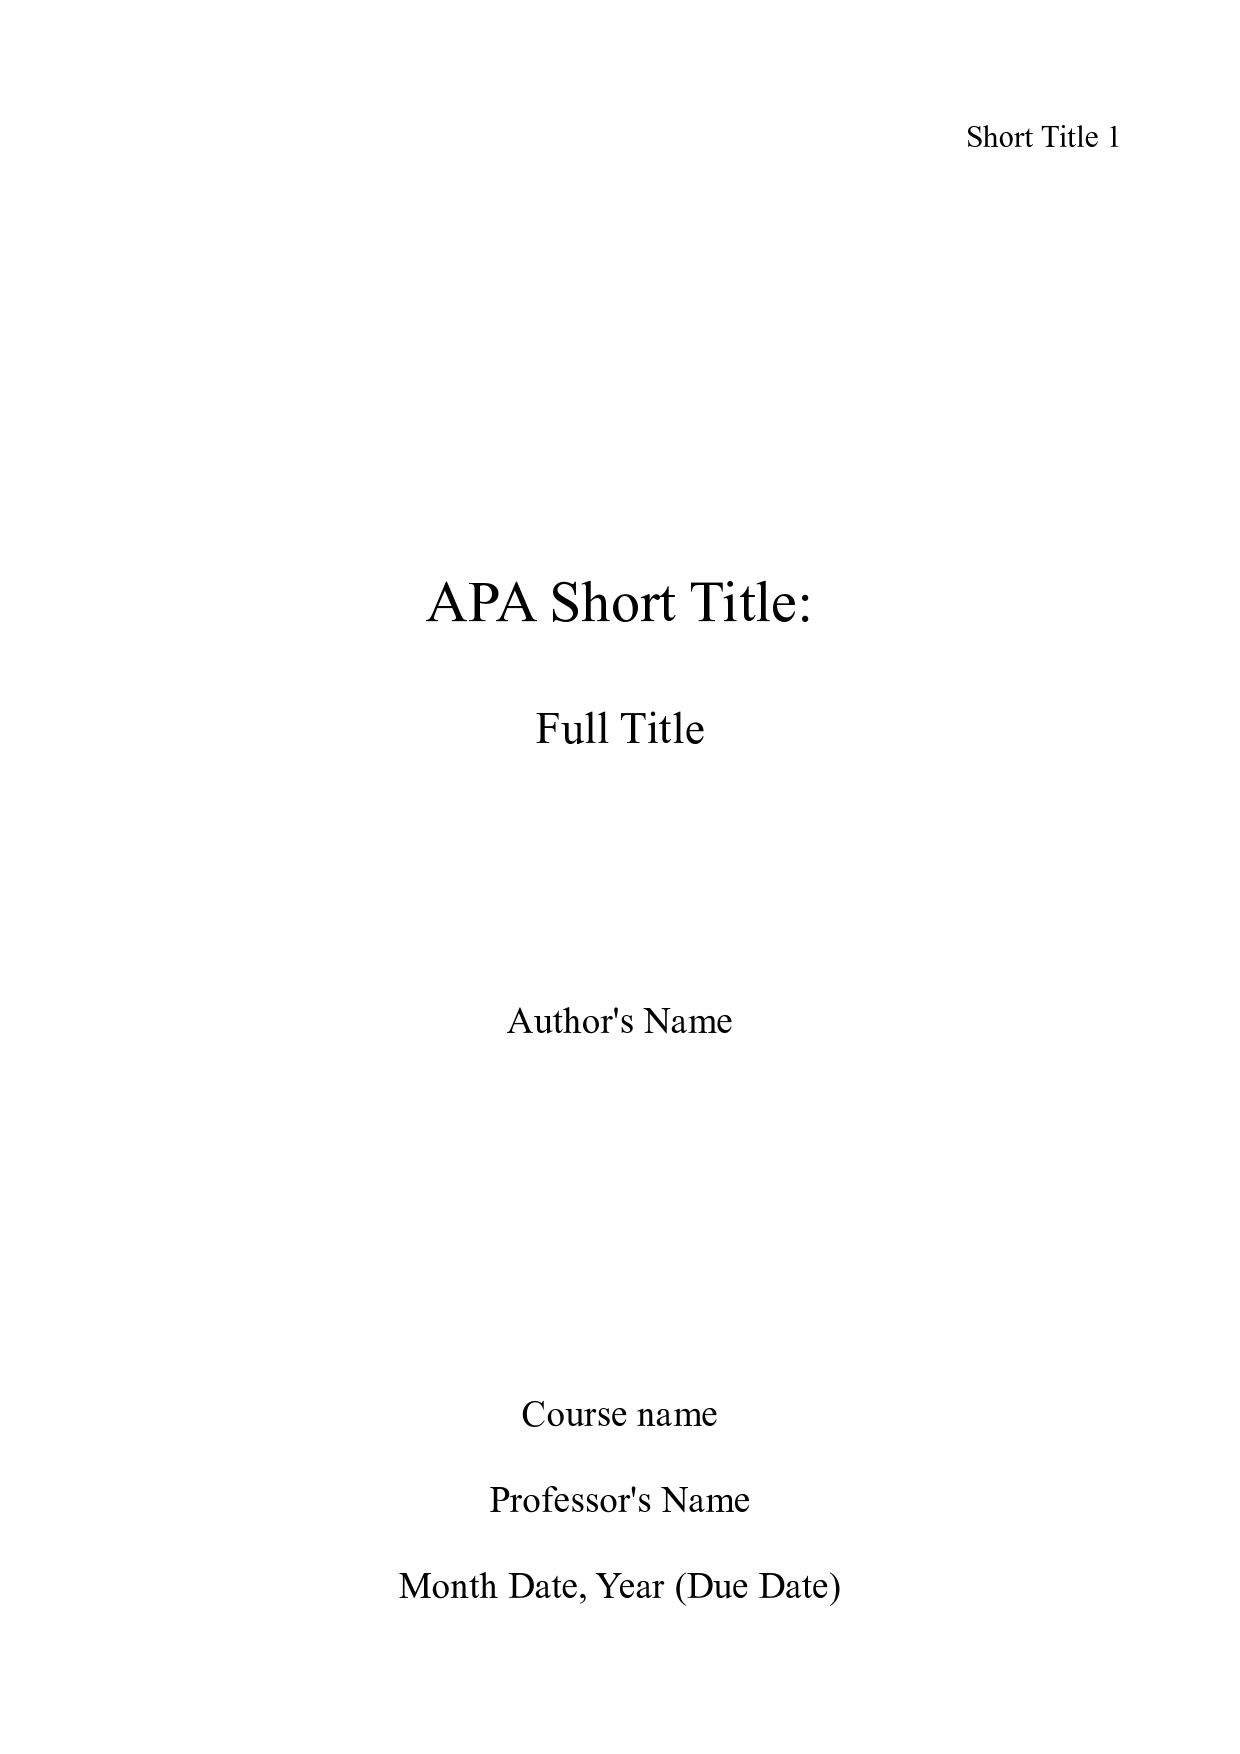 001 Apa Title Page Sample Essay Example Cover Sheet Shocking For Word An Format Mla Full